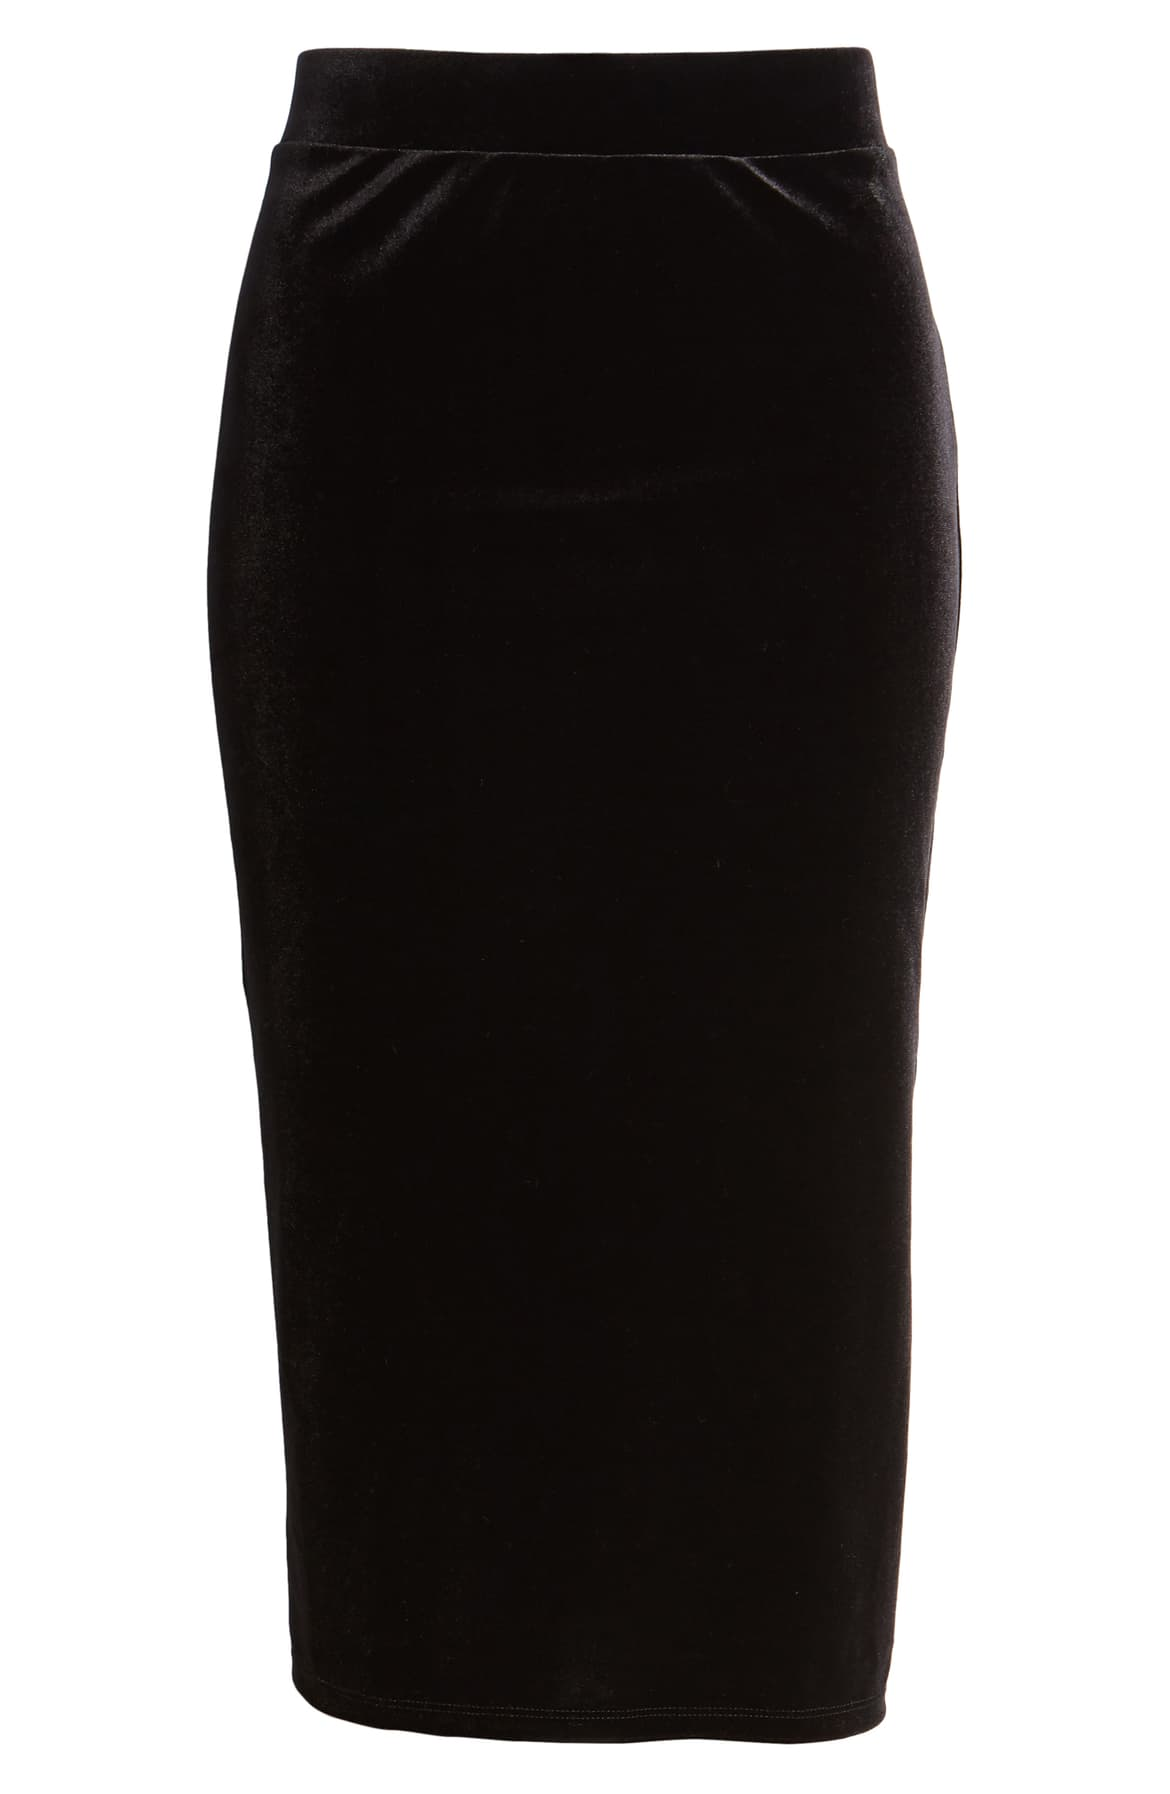 "<a  href=""https://shop.nordstrom.com/s/halogen-velvet-stripe-pencil-skirt/5349397/full?origin=keywordsearch-personalizedsort&breadcrumb=Home%2FAll%20Results&color=black-%20silver%20stripe"" target=""_blank"" title=""https://shop.nordstrom.com/s/halogen-velvet-stripe-pencil-skirt/5349397/full?origin=keywordsearch-personalizedsort&breadcrumb=Home%2FAll%20Results&color=black-%20silver%20stripe"">Halogen Velvet Pencil Skirt - $41.40</a>. From cozy to gold hued to tailored, Nordstrom has the hottest trends for getting glam this holiday season! (Credit: Nordstrom)"